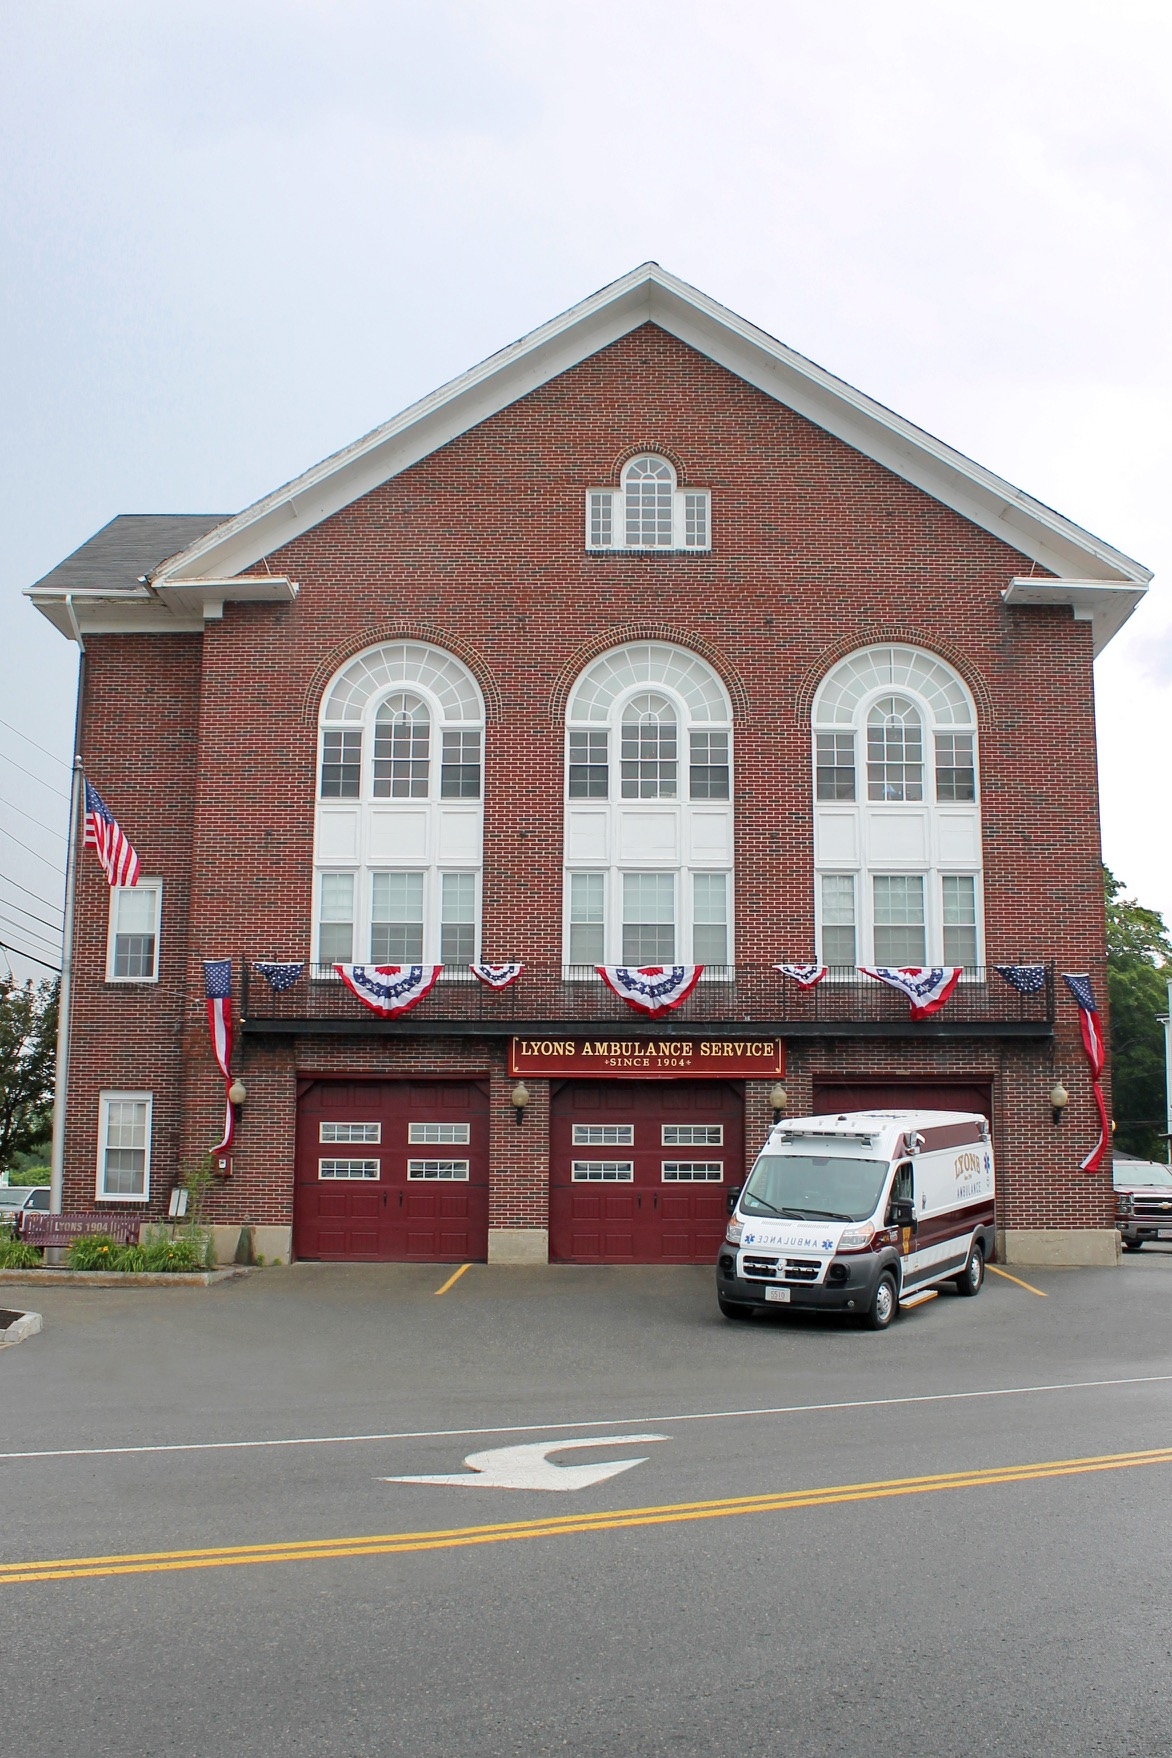 Lyons Ambulance Service headquartered in historic fire station in Danvers, MA